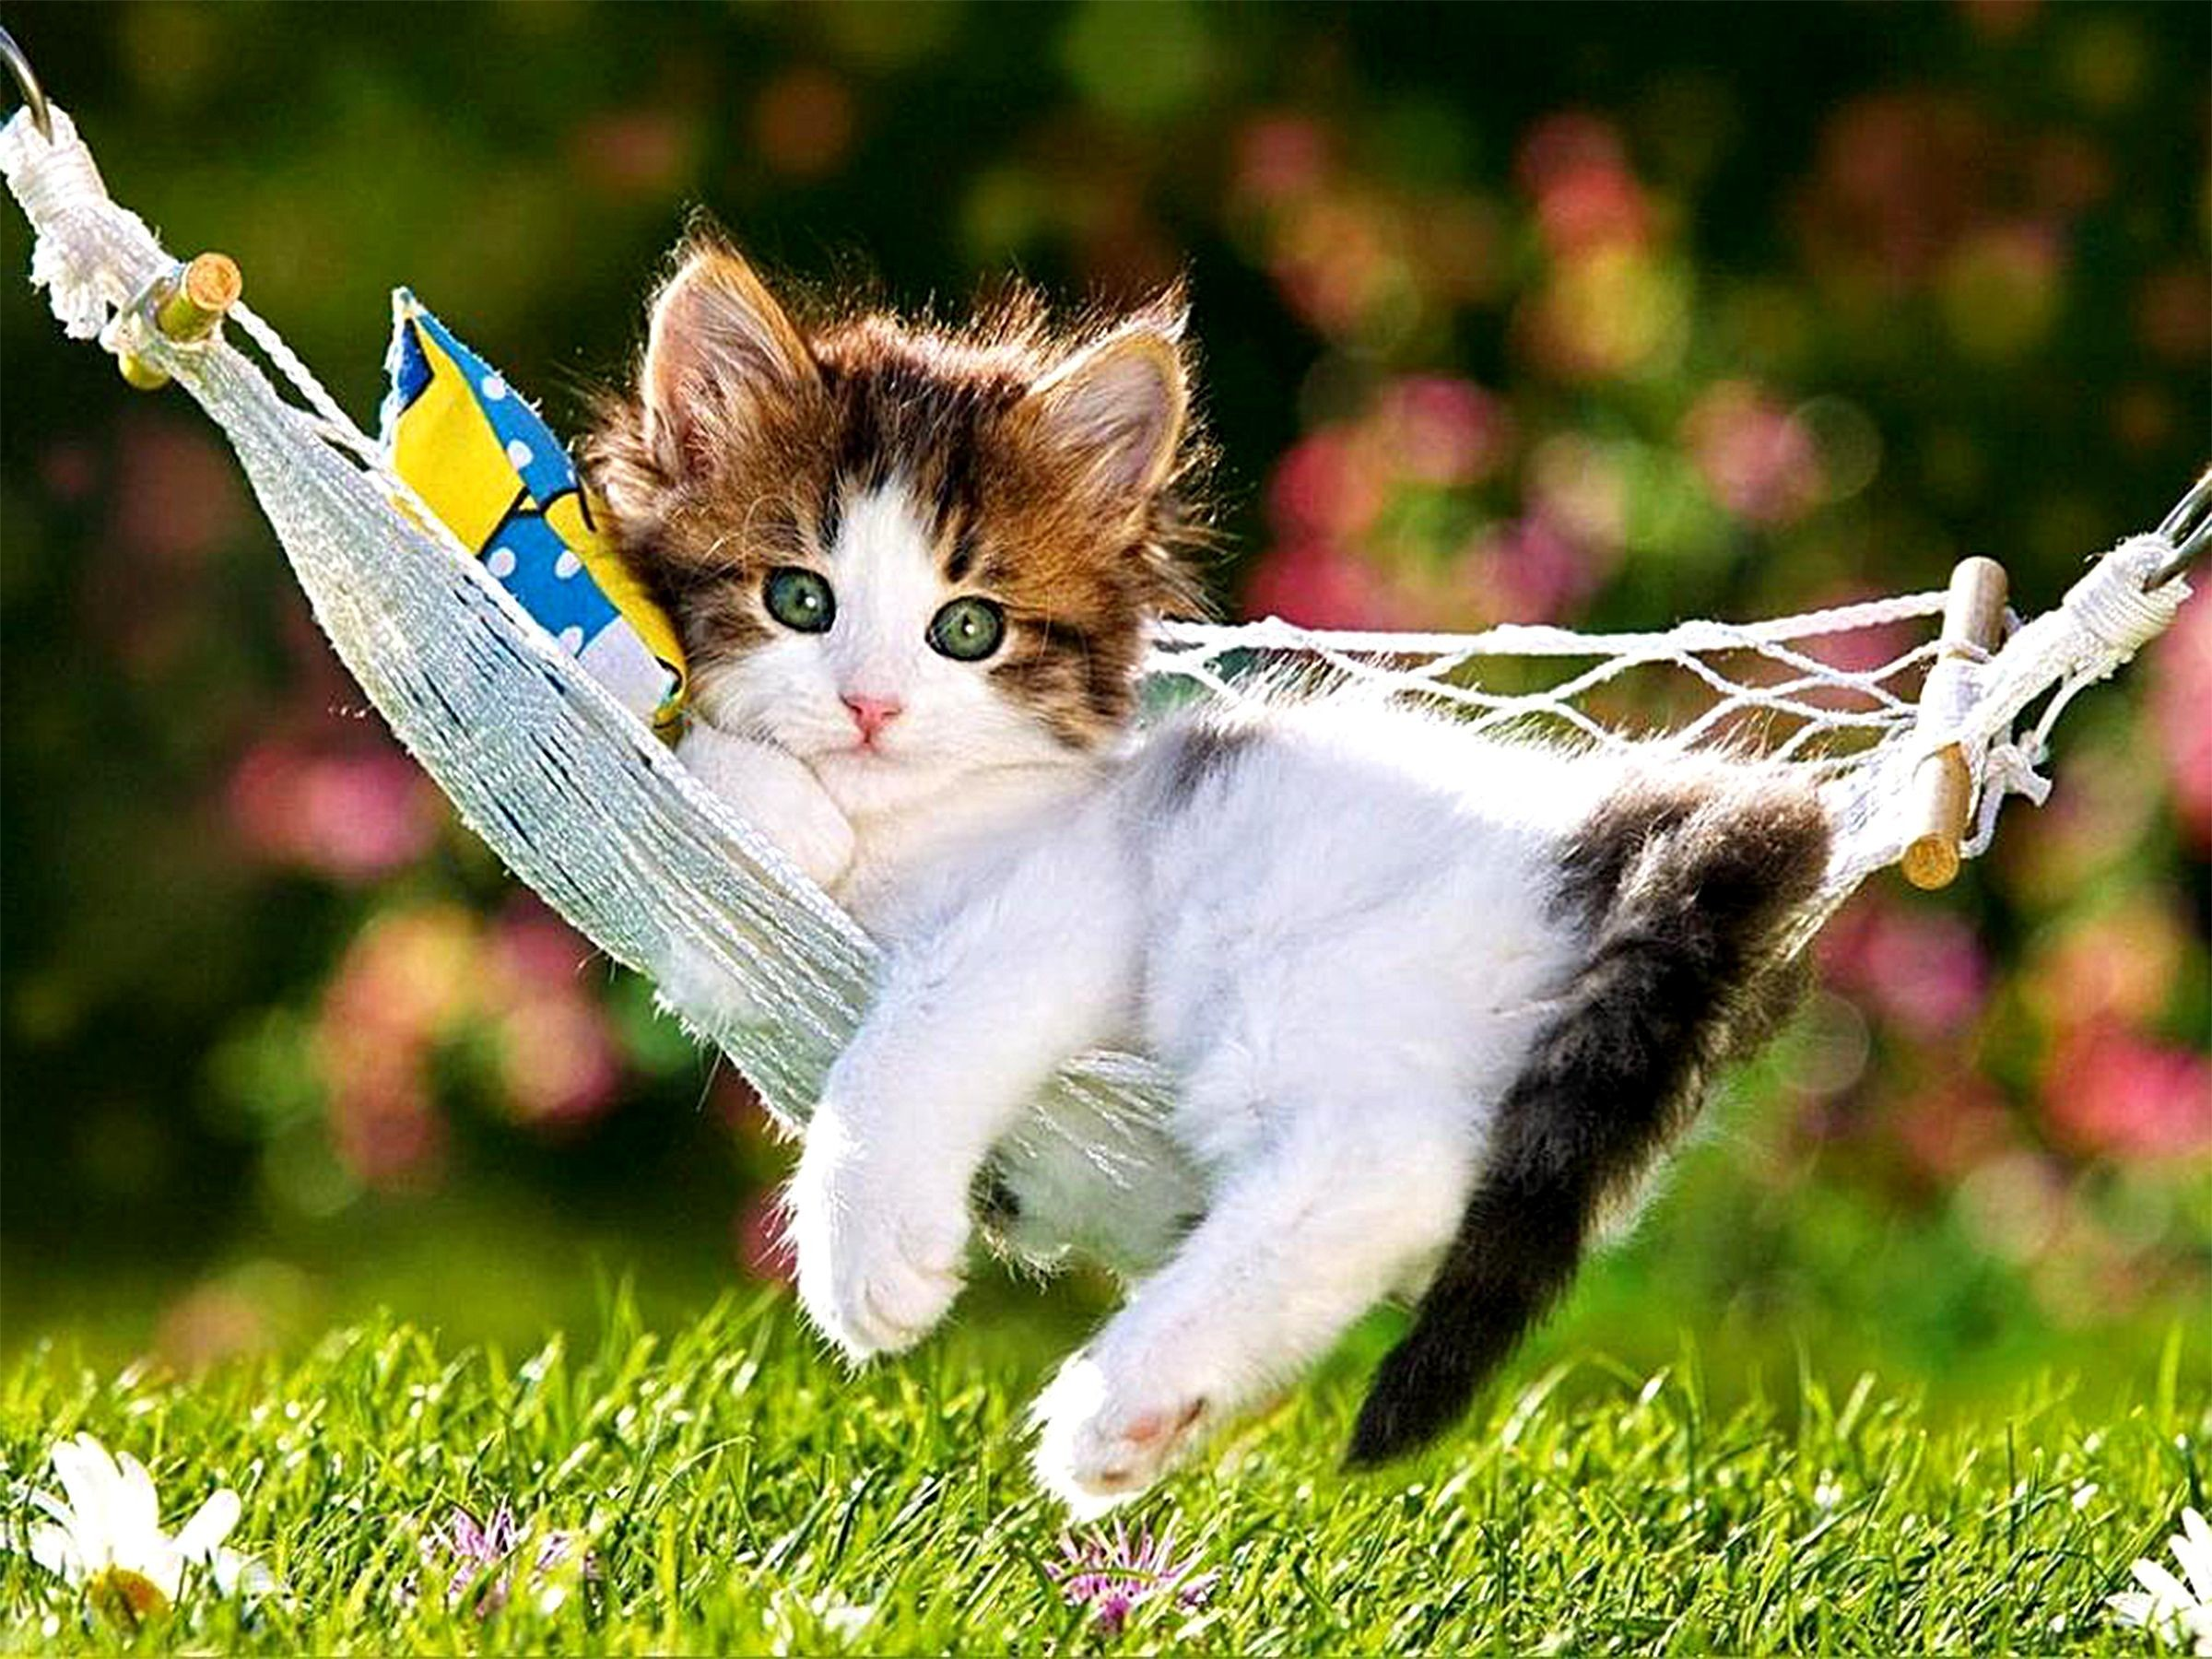 Wallpaper Kittens Posted By Samantha Sellers